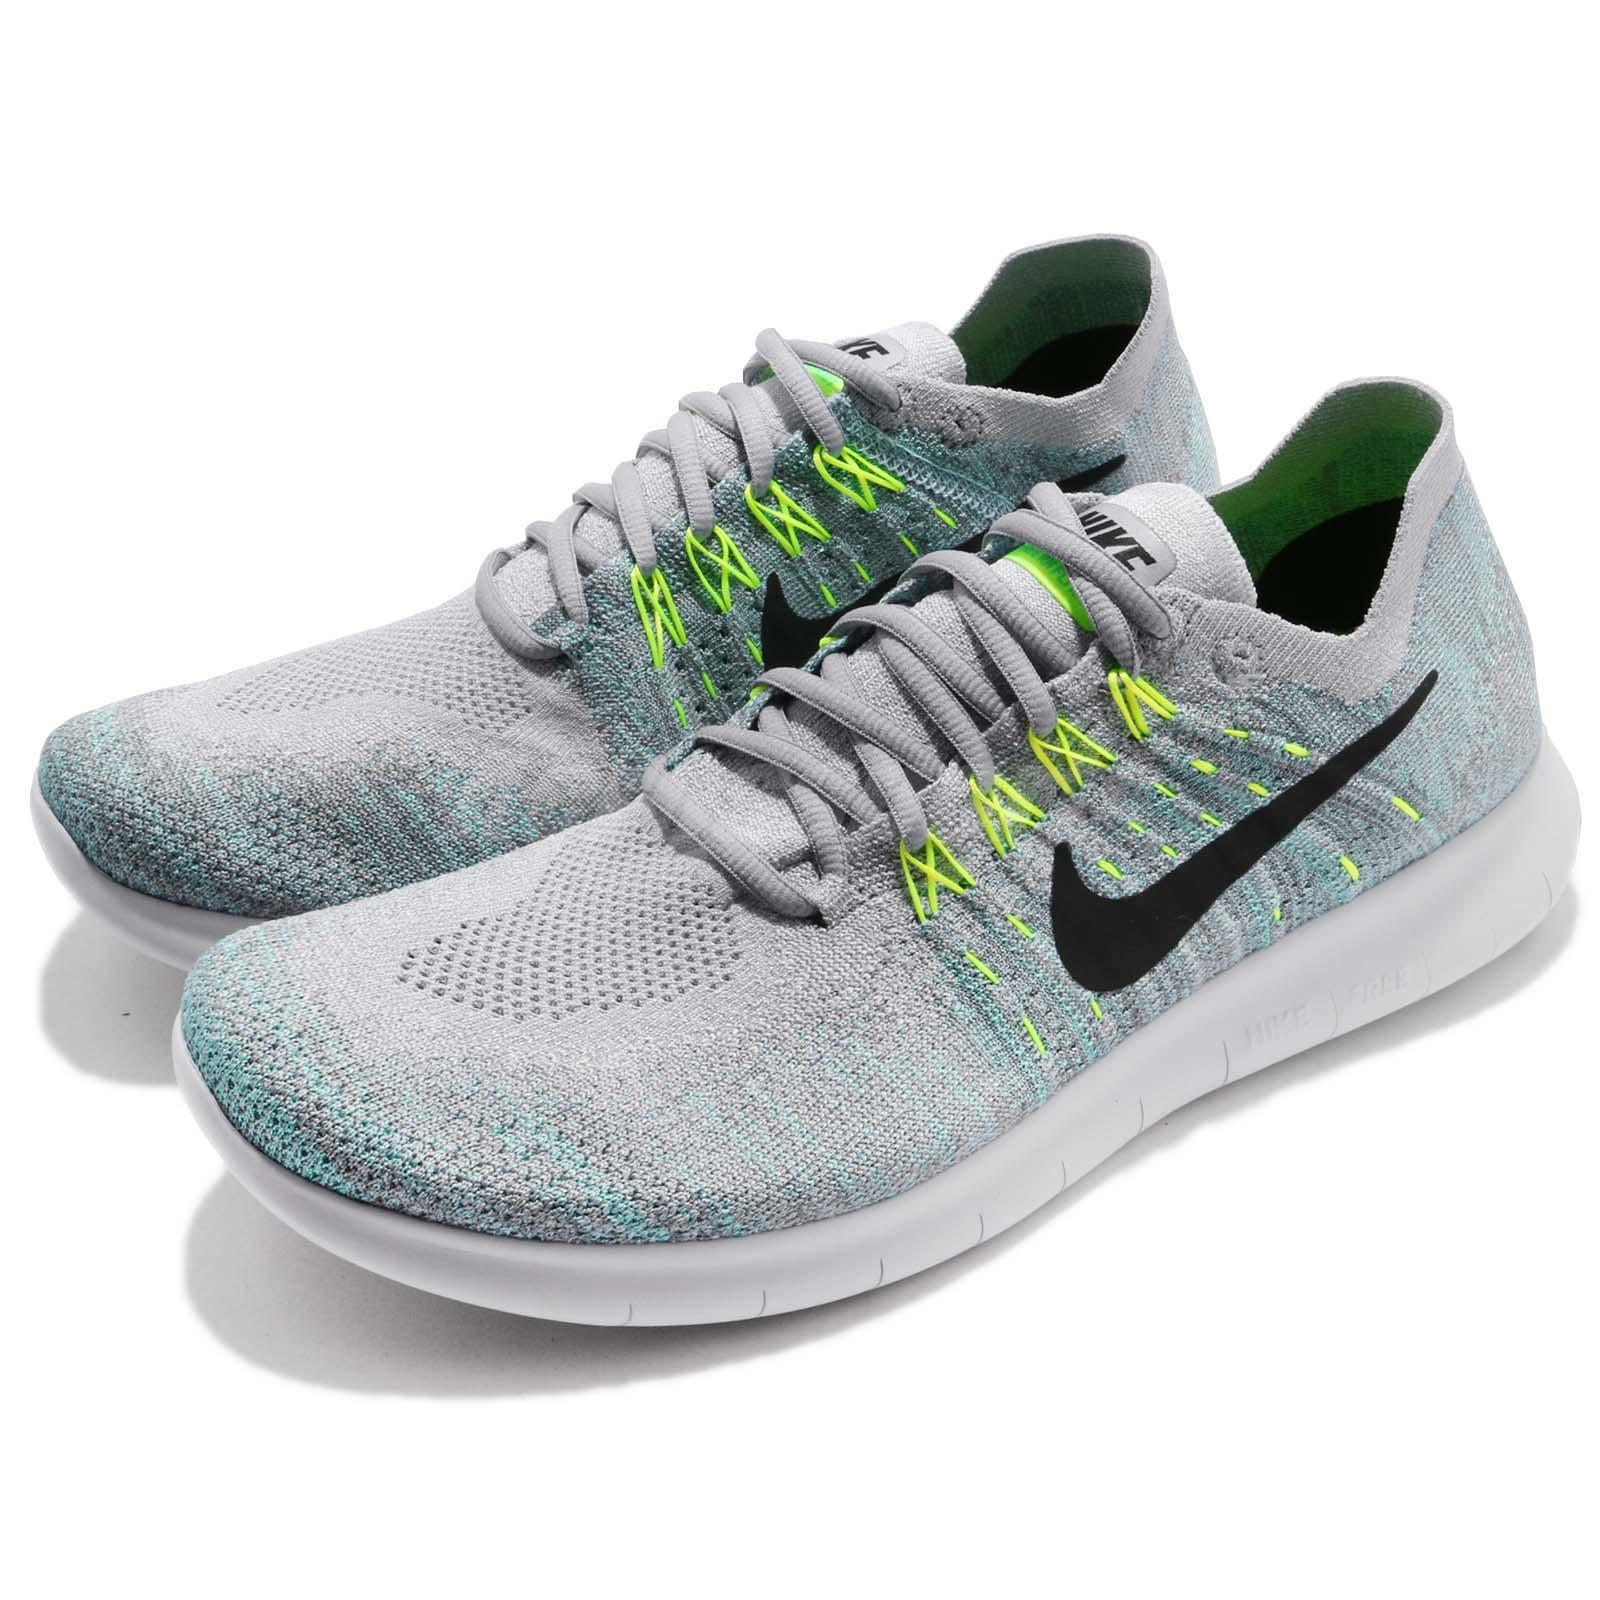 8e6568ee0803 Details about Nike Free RN Flyknit 2017 White Black Blue Men Running Shoes  Sneakers 880843-014